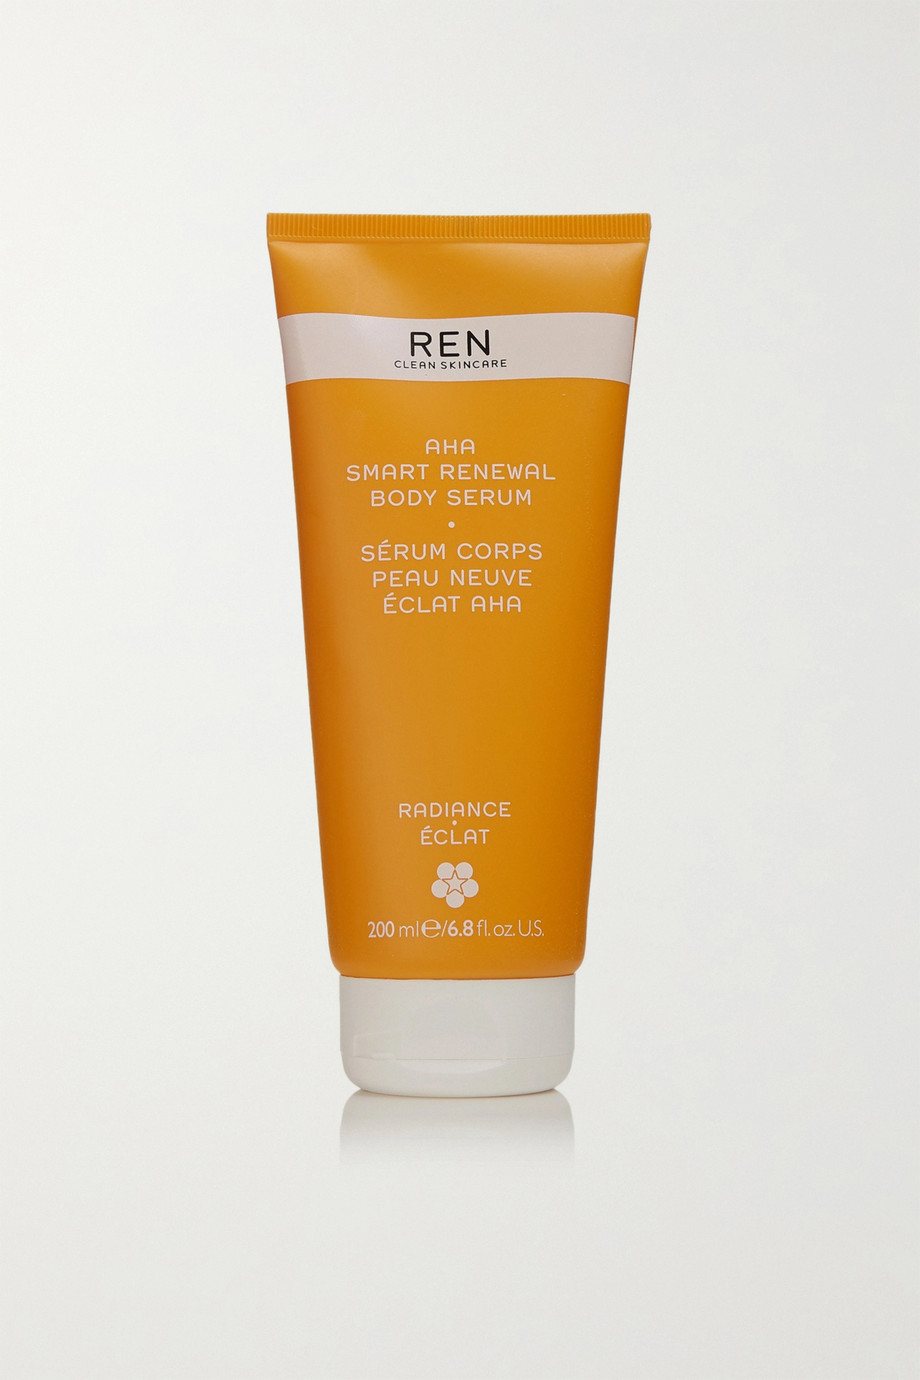 REN CLEAN SKINCARE AHA Smart Renewal Body Serum, 200ml